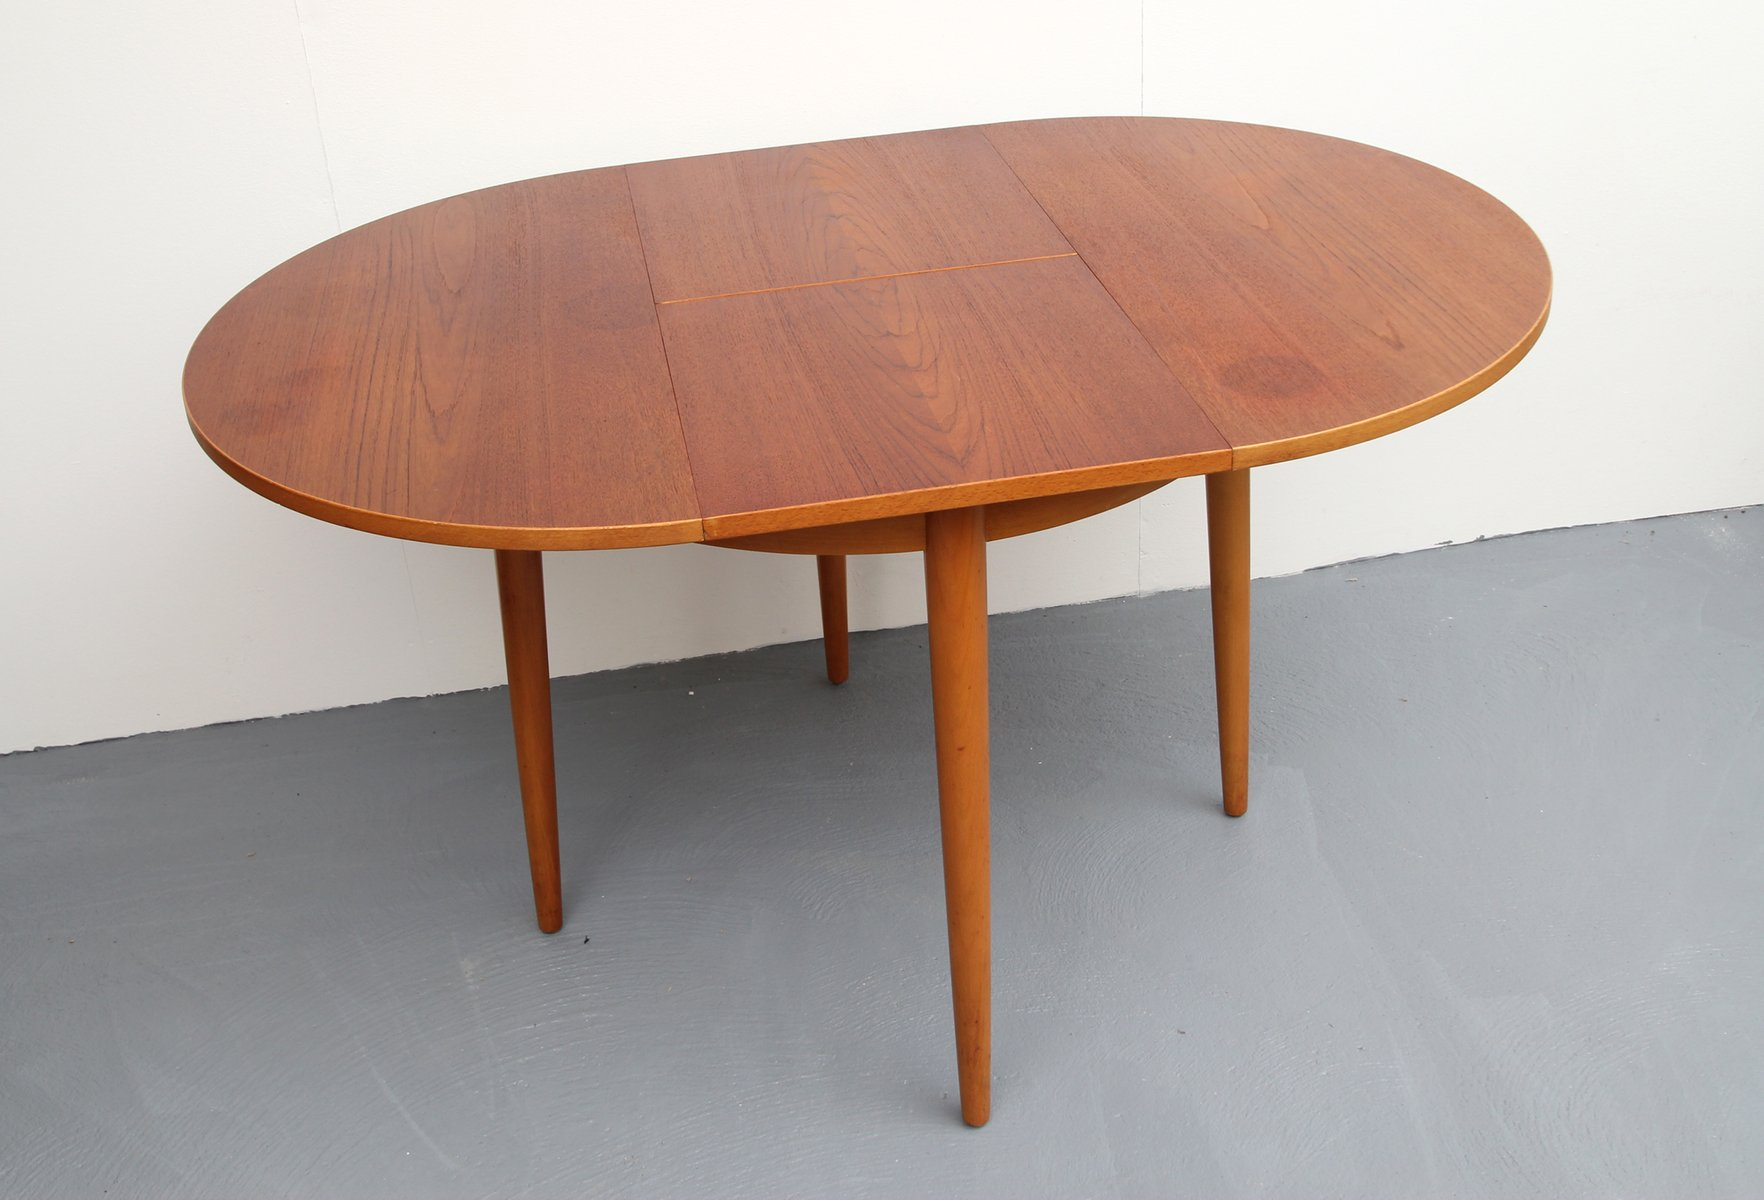 Dining table for sale large dining tables for sale for Small dining tables for sale